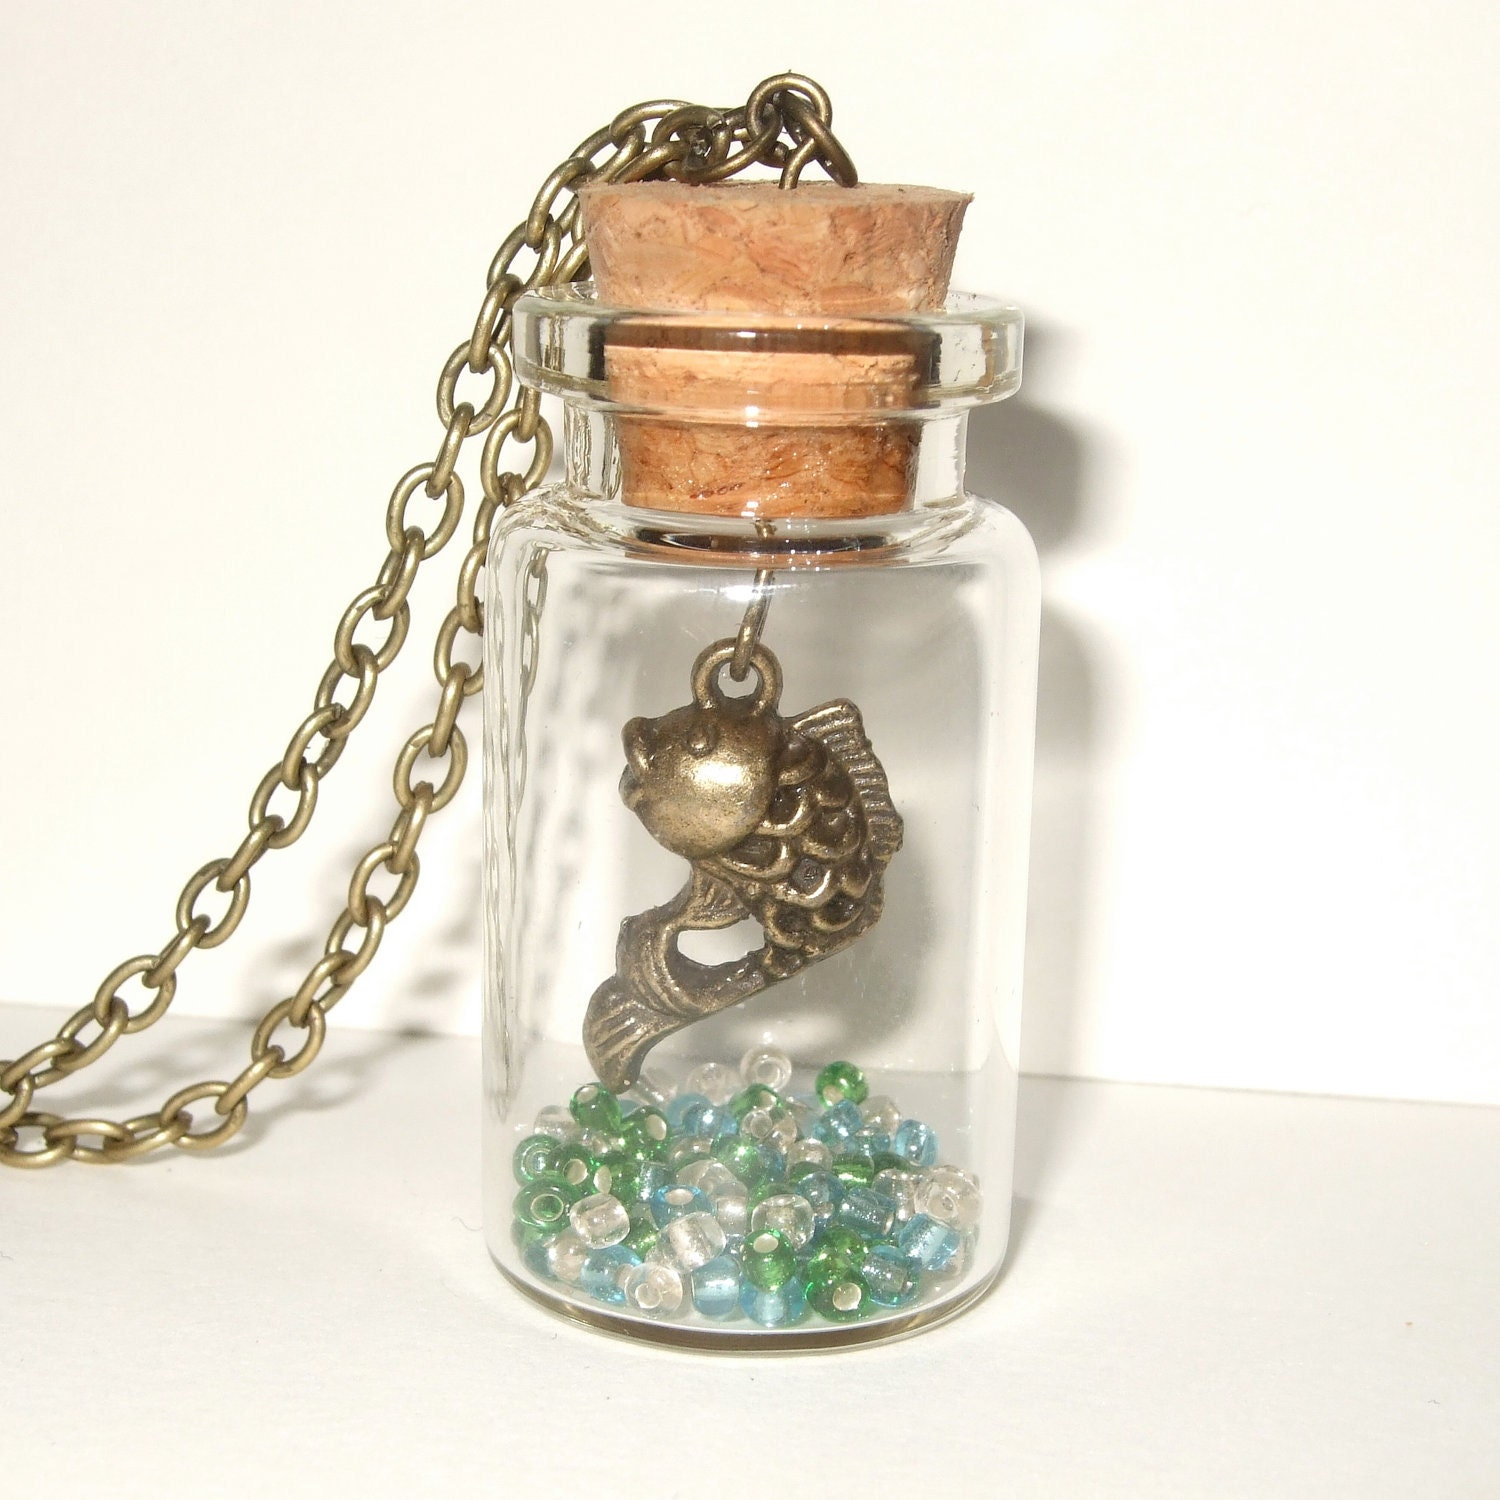 Koi Necklace Fish Jewelry Bottle Necklace Koi Fish Necklace Tattoo Style Koi Japanese Koi Jewelry Bottle Pendant Fish in a Bottle